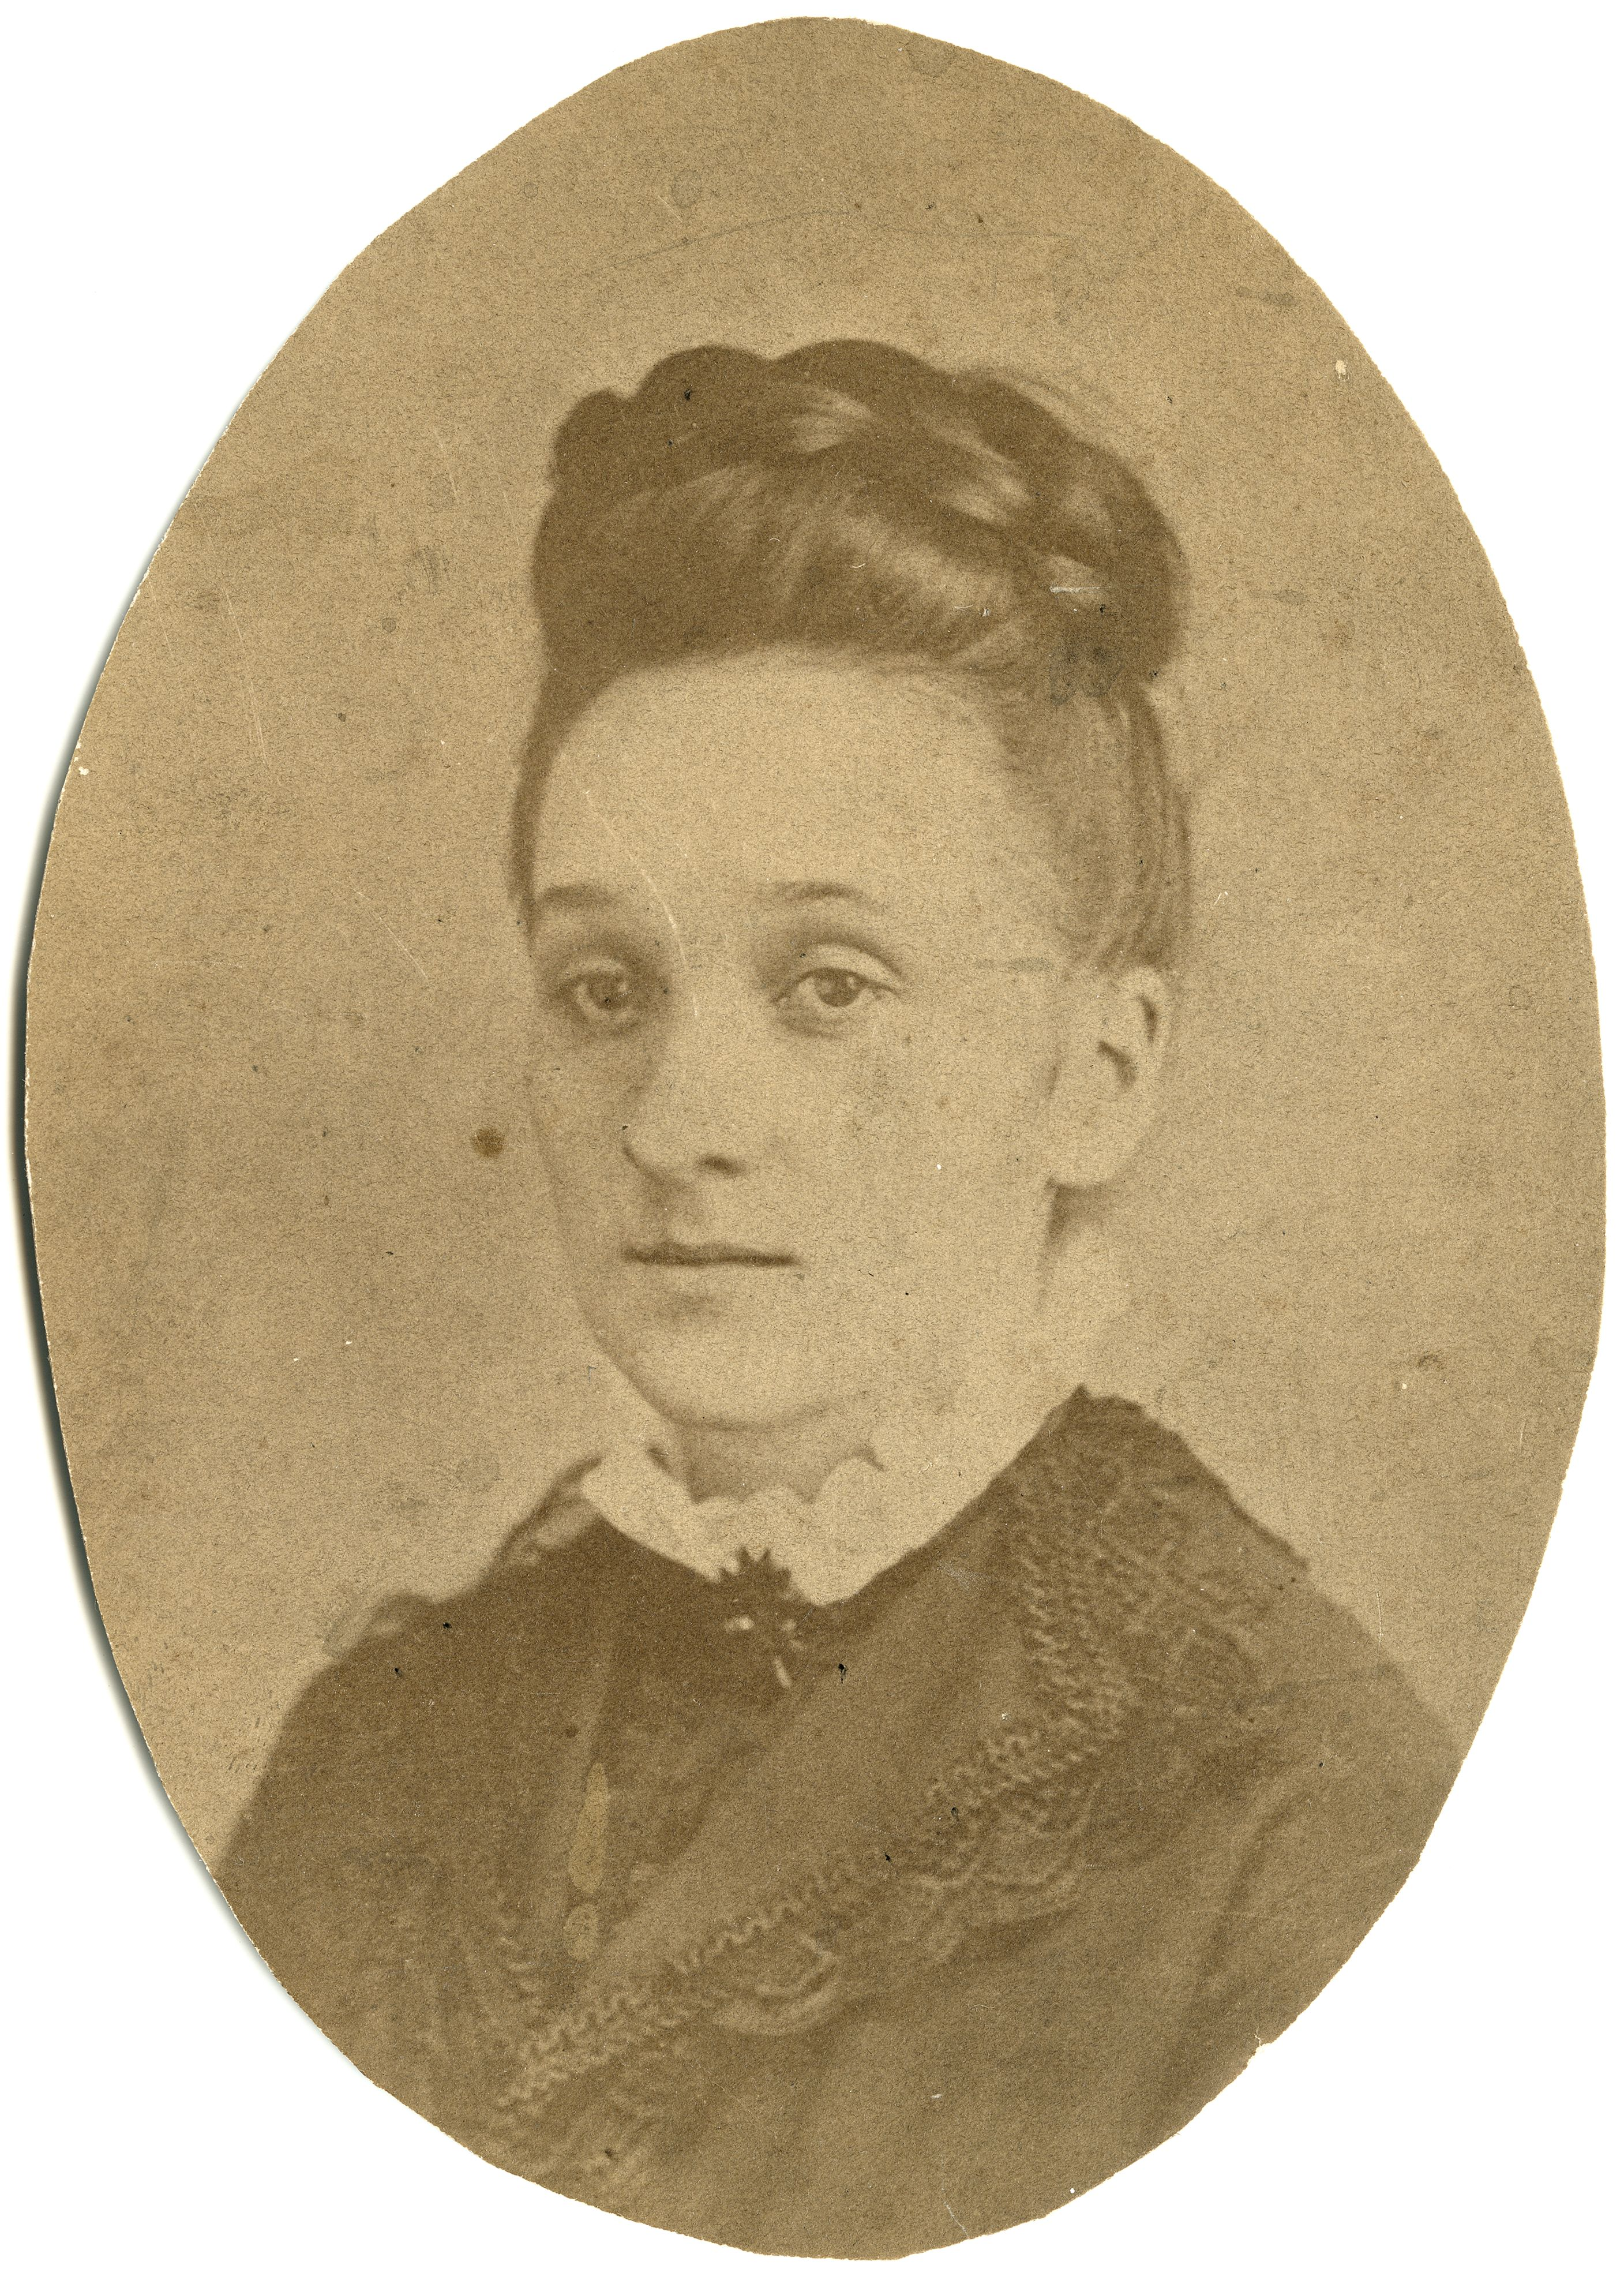 Mary Elizabeth Harrigan